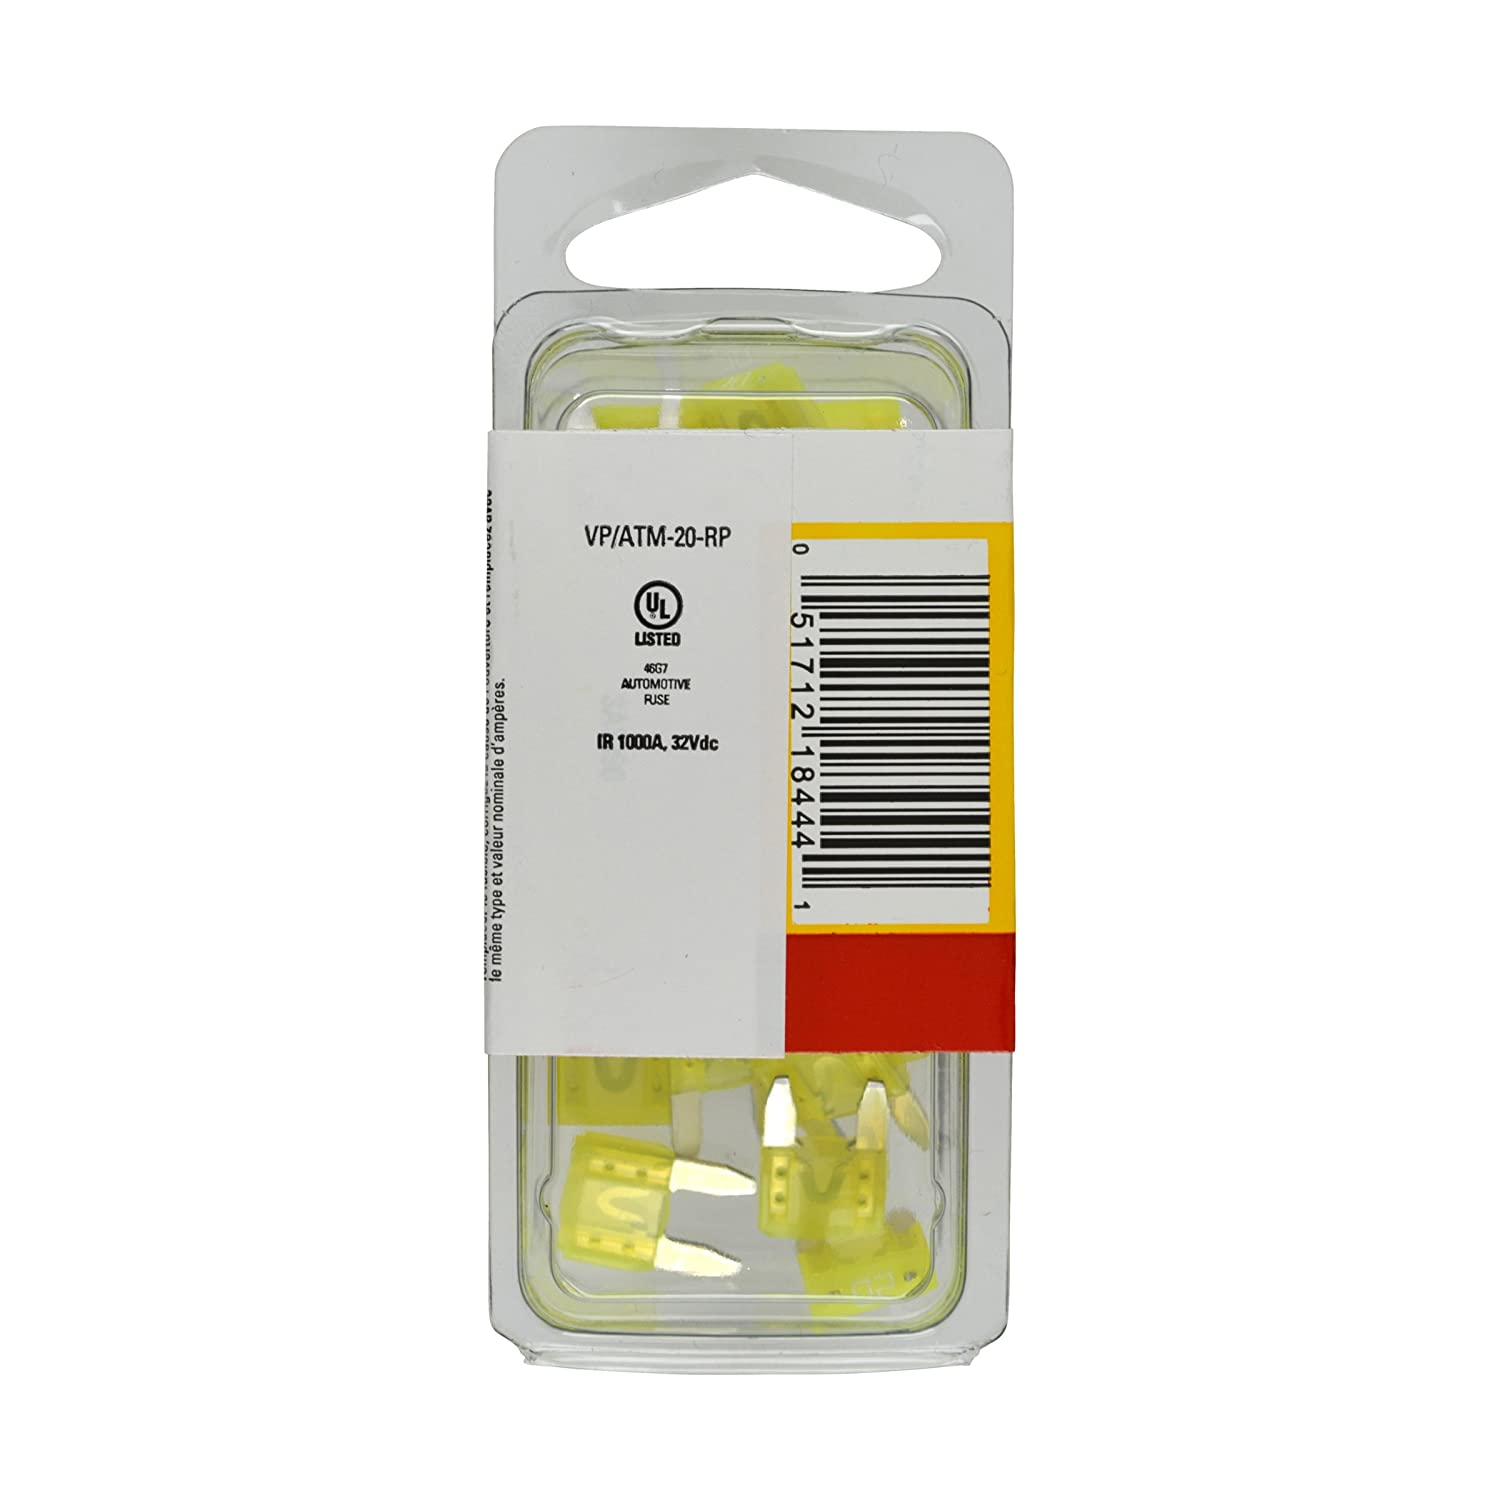 Bussmann VP//ATM-20-RP Yellow 20 Amp Fast Acting ATM Mini Fuse, Pack of 25